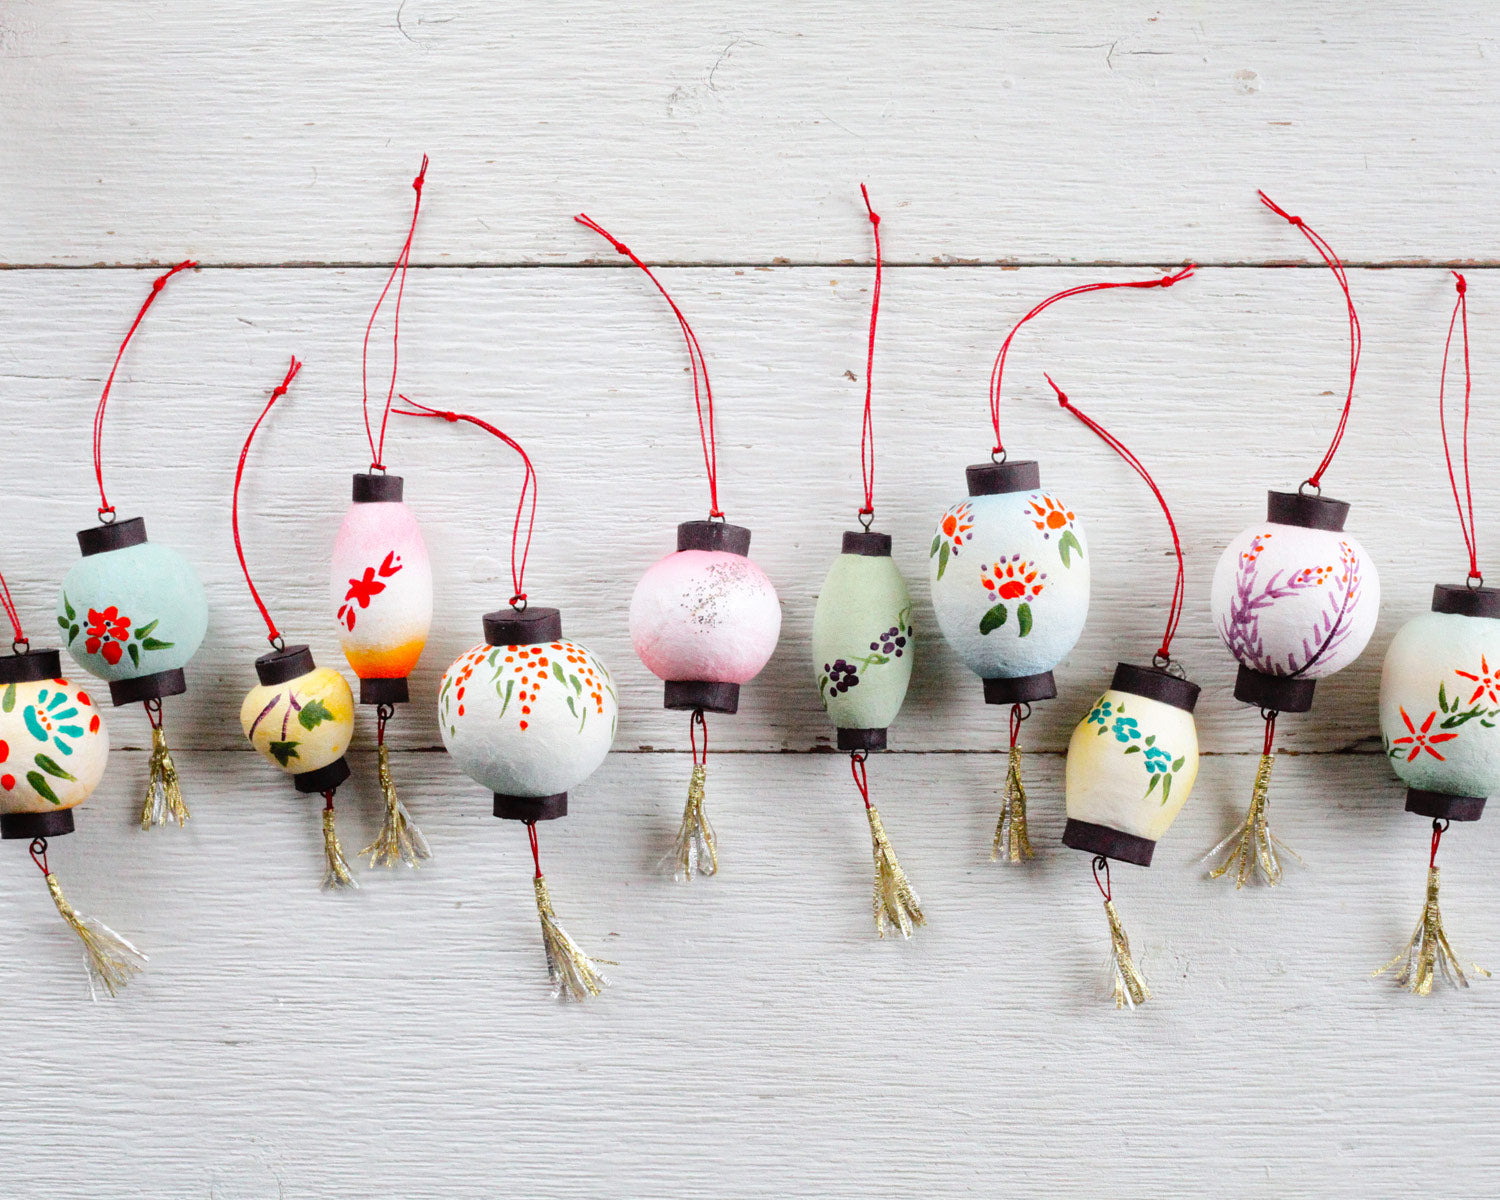 Spun Cotton Lanterns